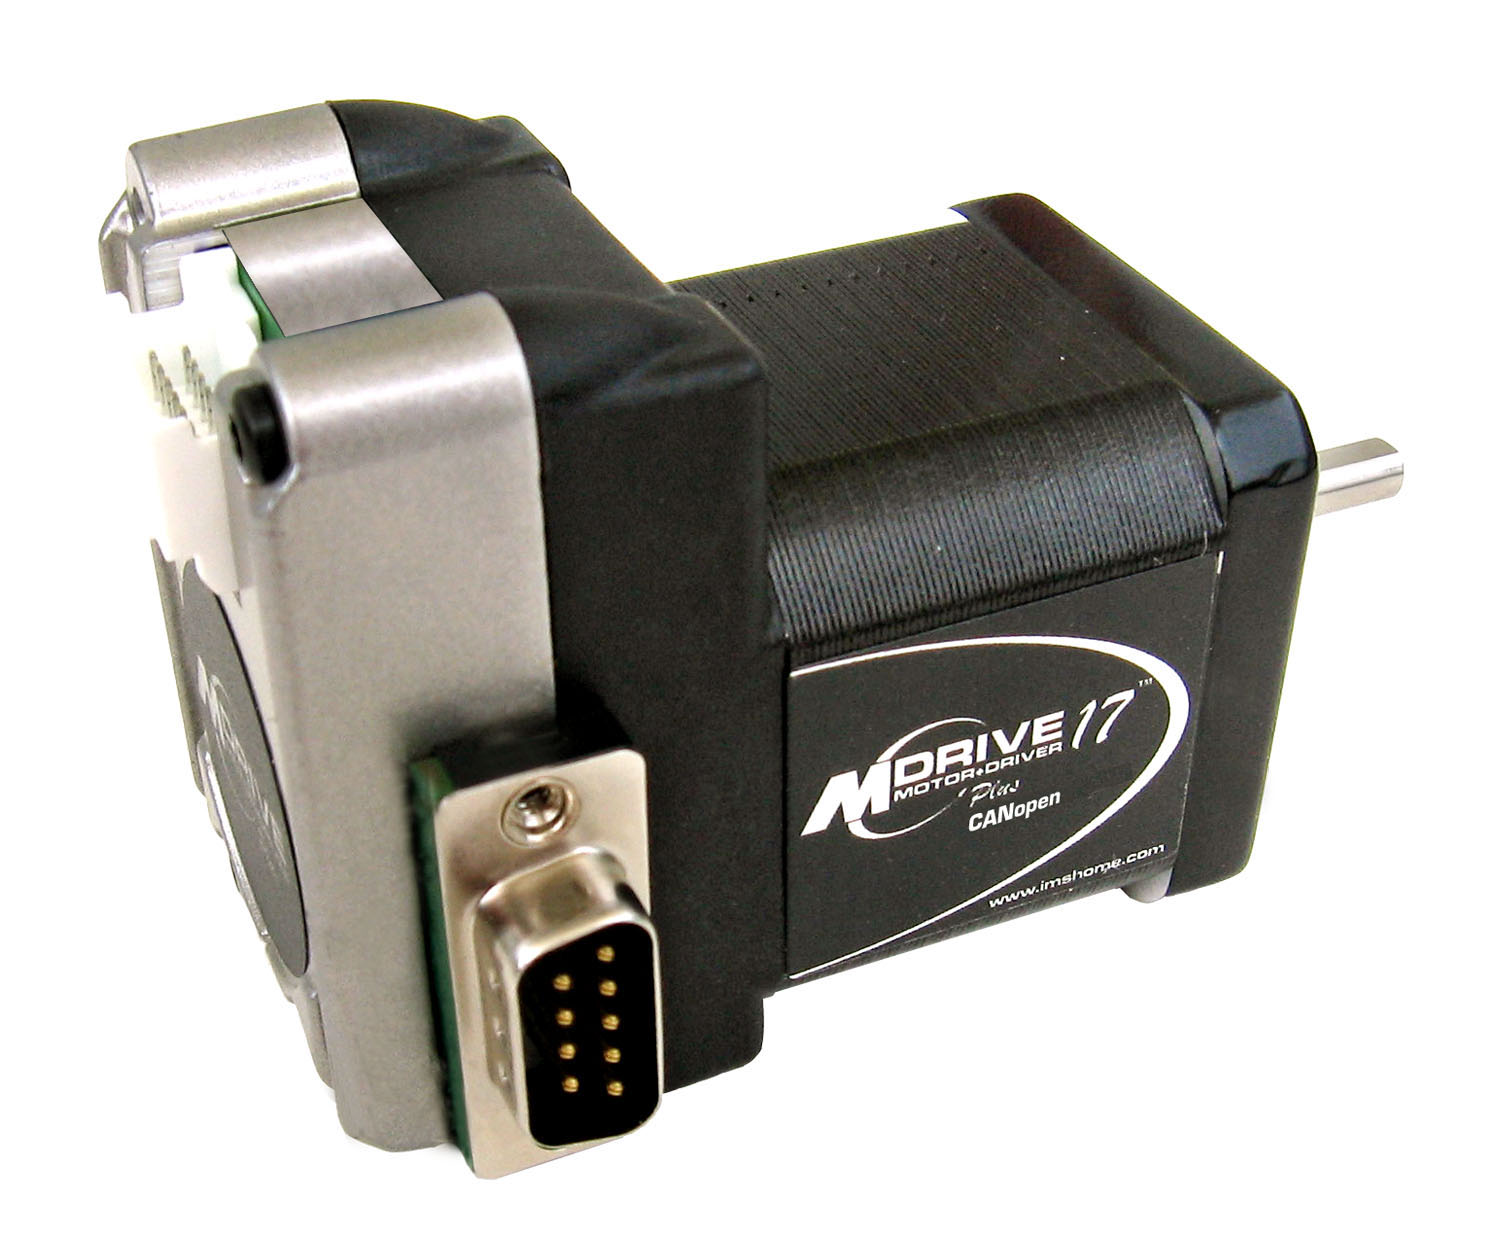 Mdrive 17 Plus Motion Control Canopen